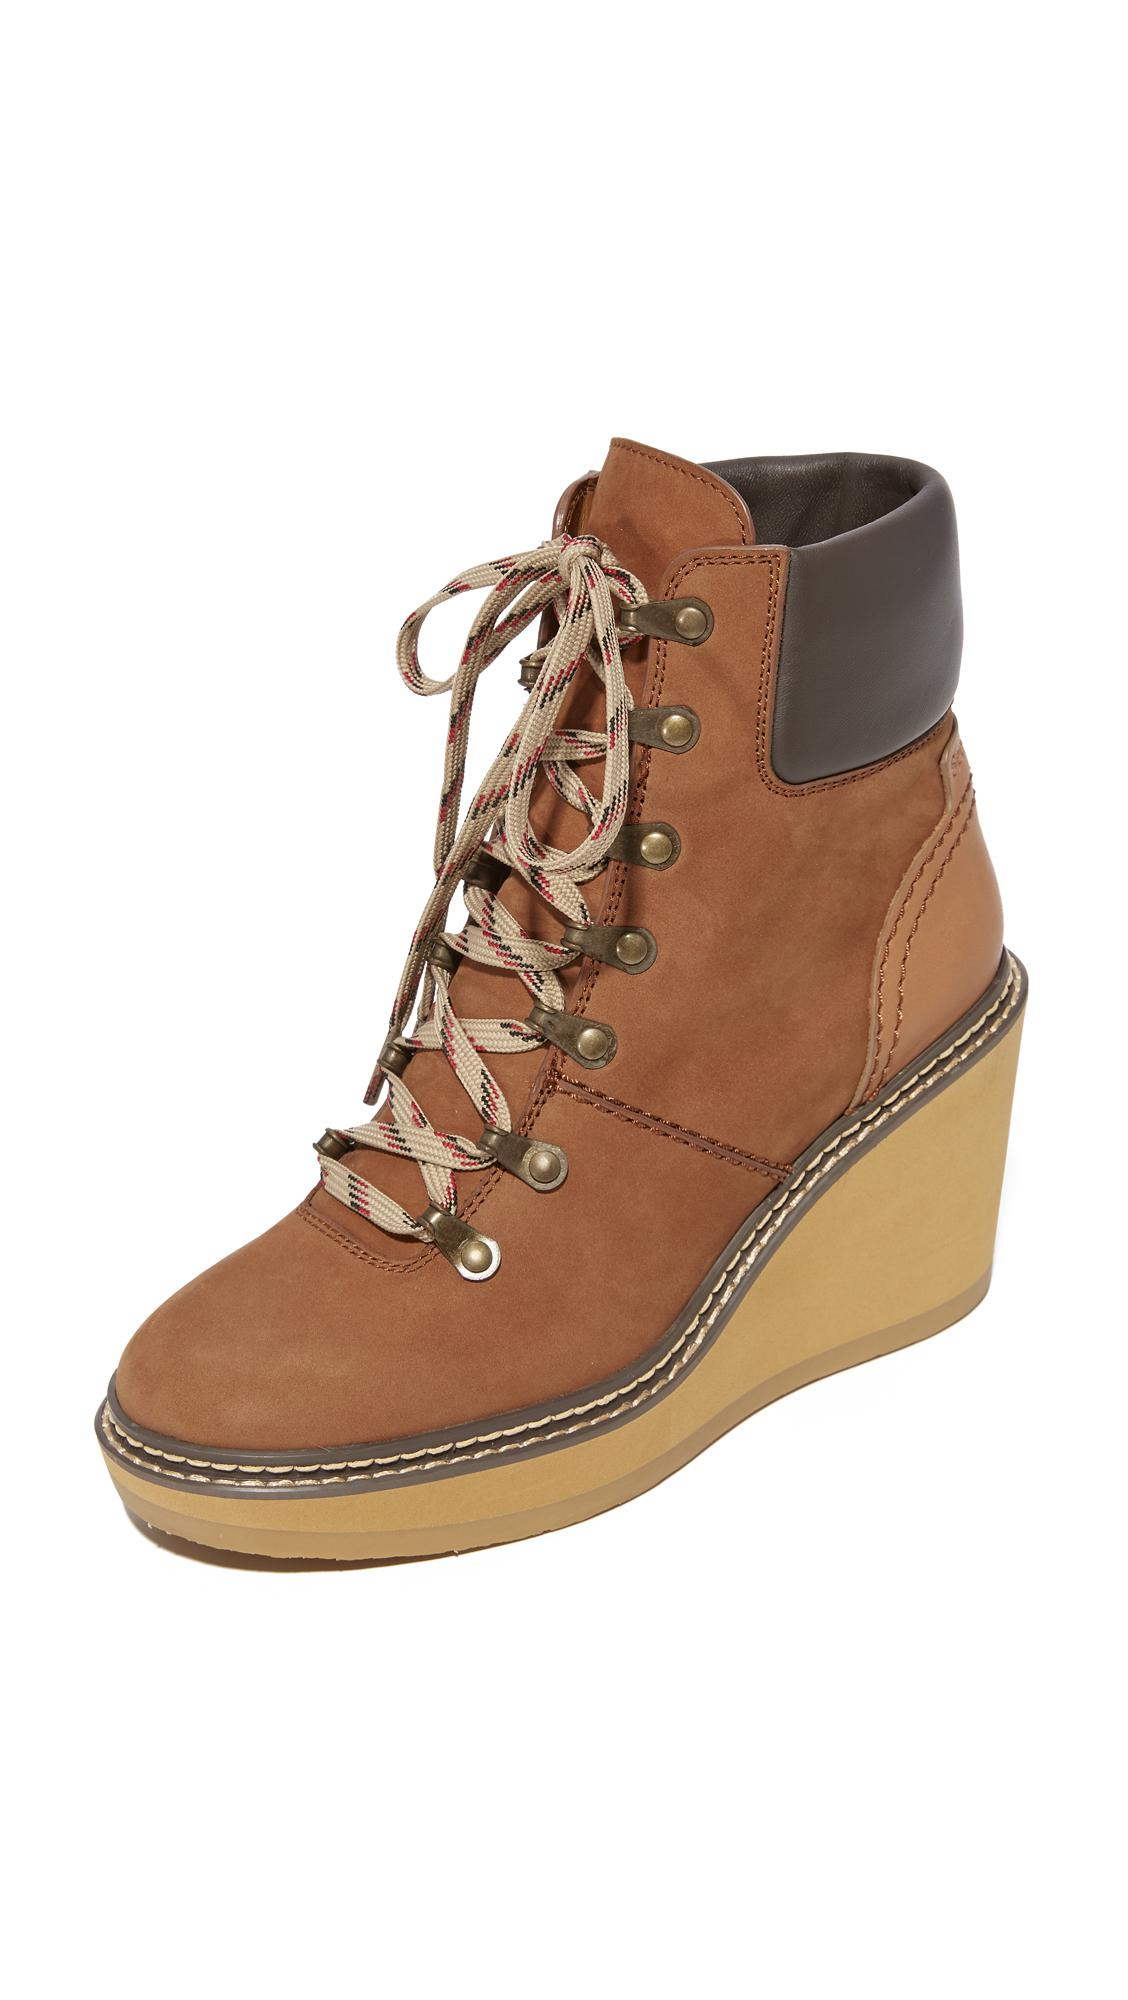 04135cb67dd1 Lyst - See By Chloé Eileen Wedge Boots in Brown